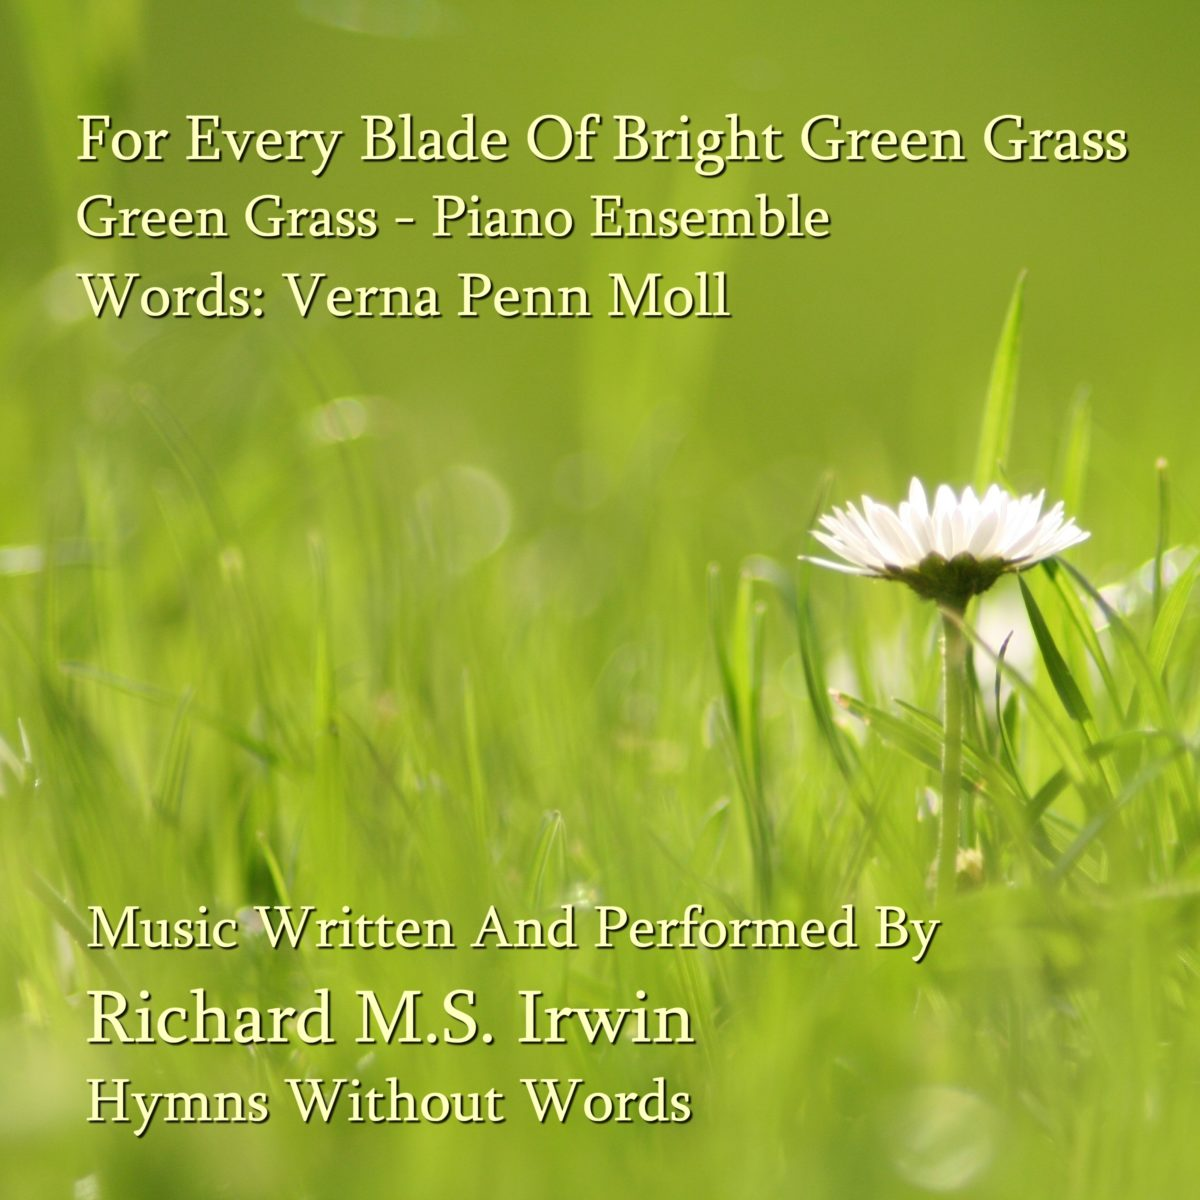 For Every Blade Of Bright Green Grass (Green Grass – 5 Verses) – Piano Ensemble